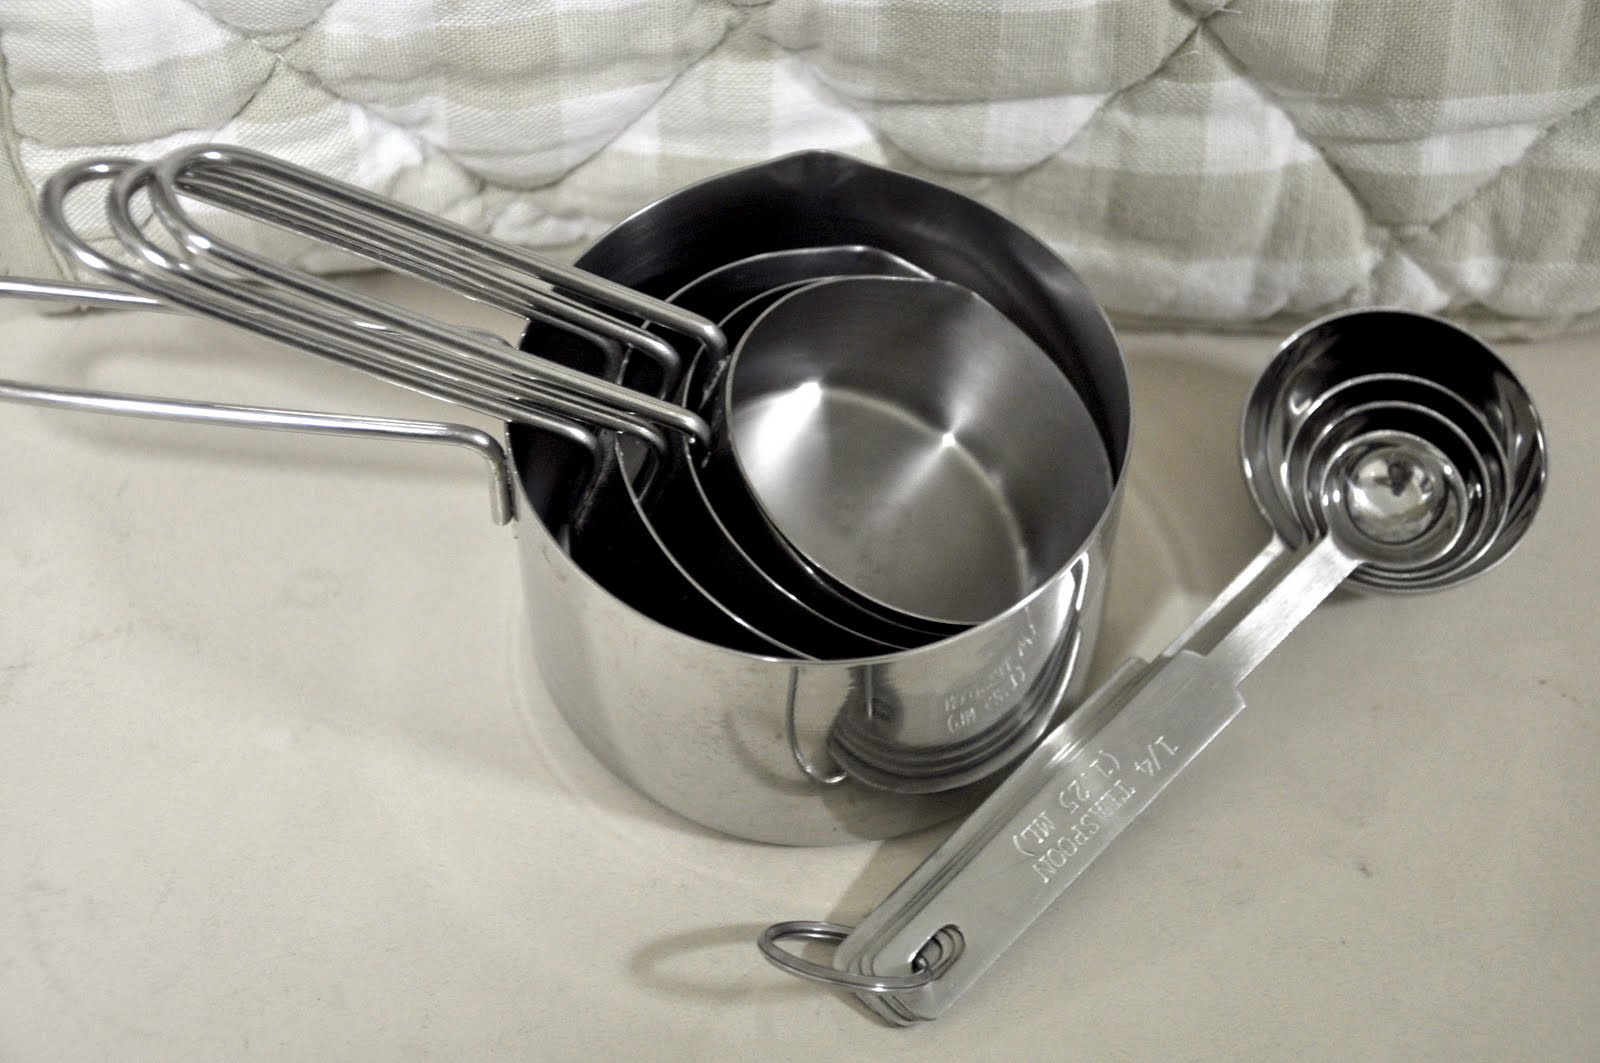 Displaying 17> Images For - Baking Tools And Equipment...